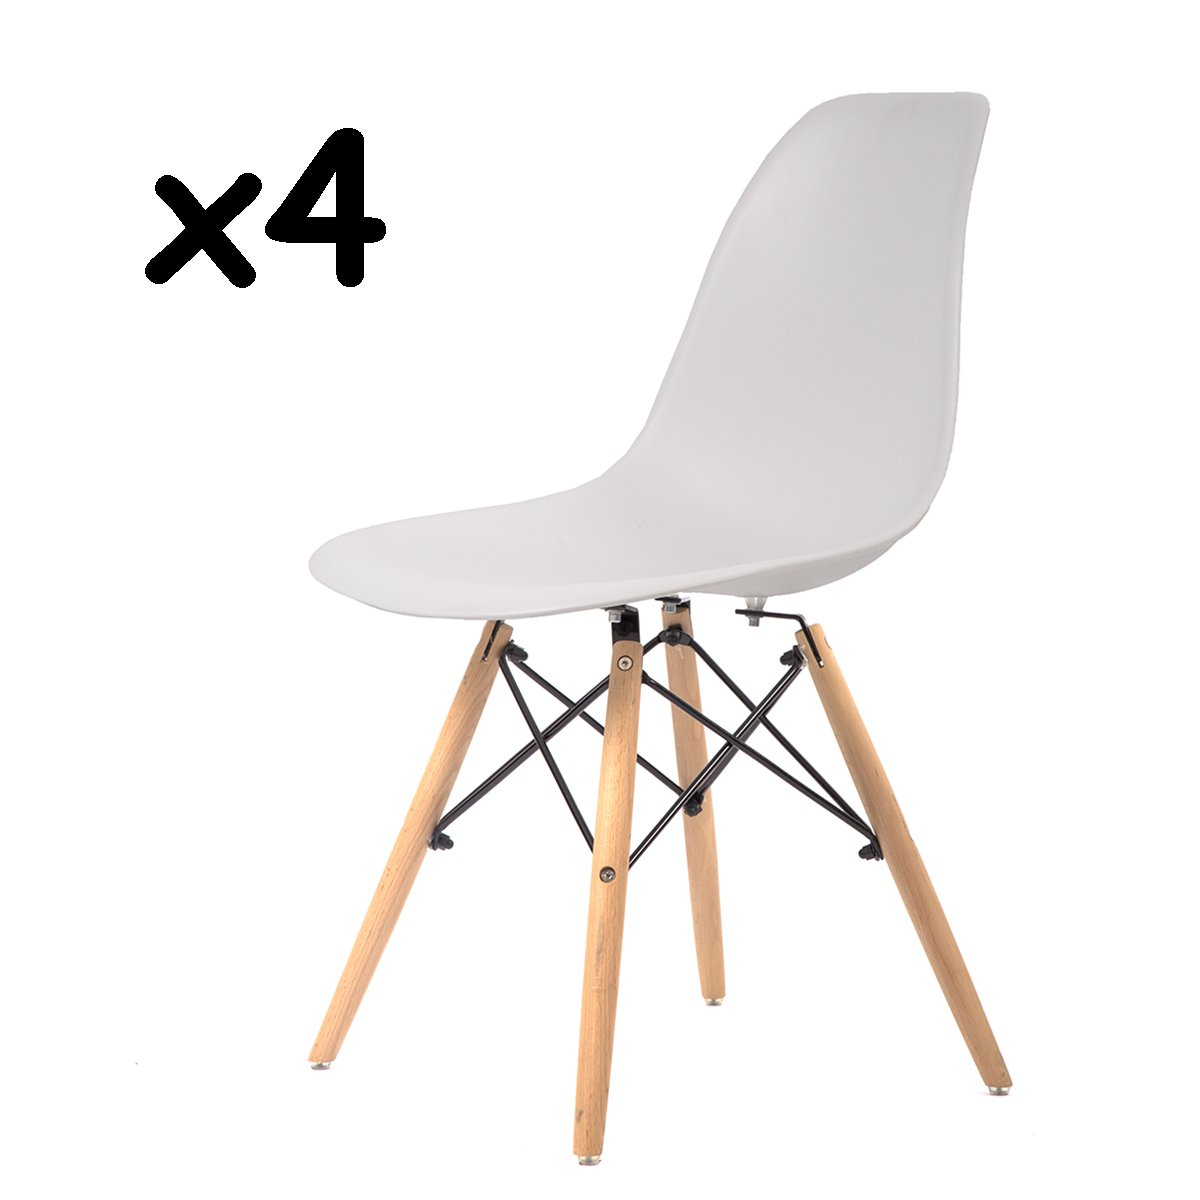 Mr-Direct Mid Century Modern Style Plastic Dining Side Chair Wood Legs Set of 4 White